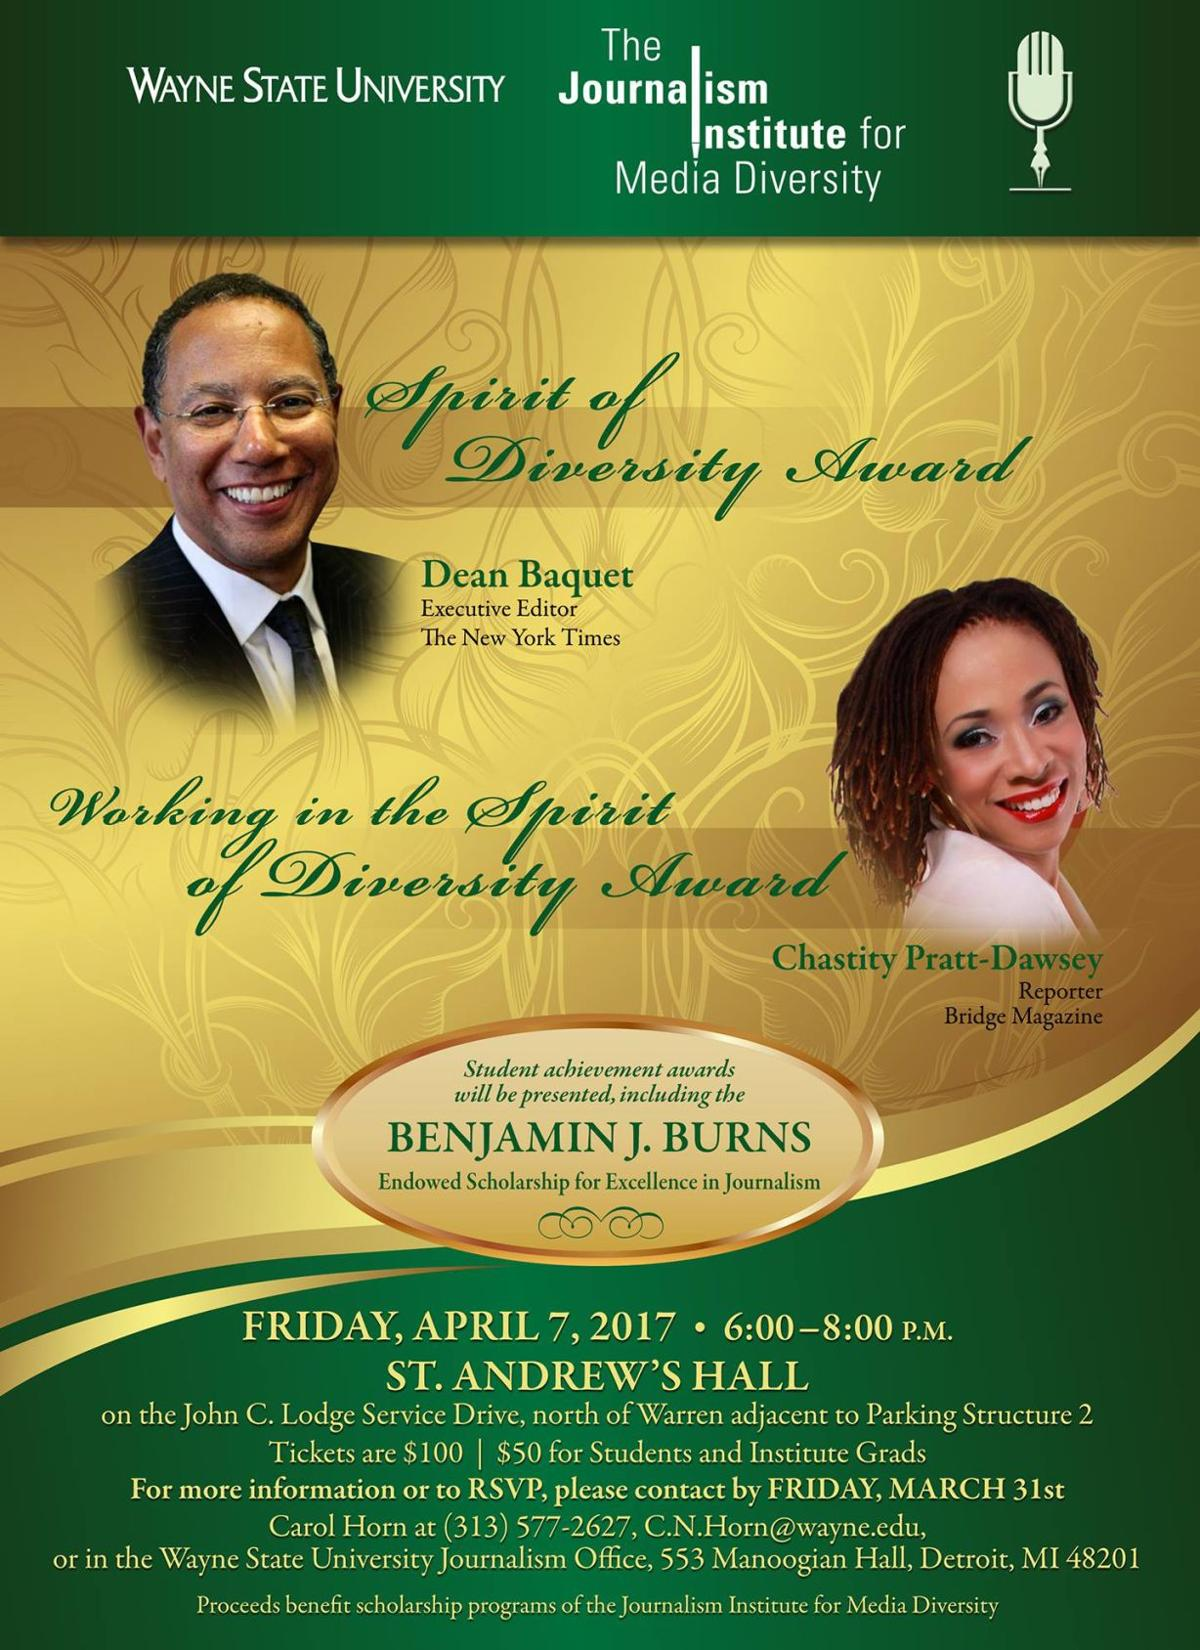 Annual Spirit of Diversity will be held on April 7.